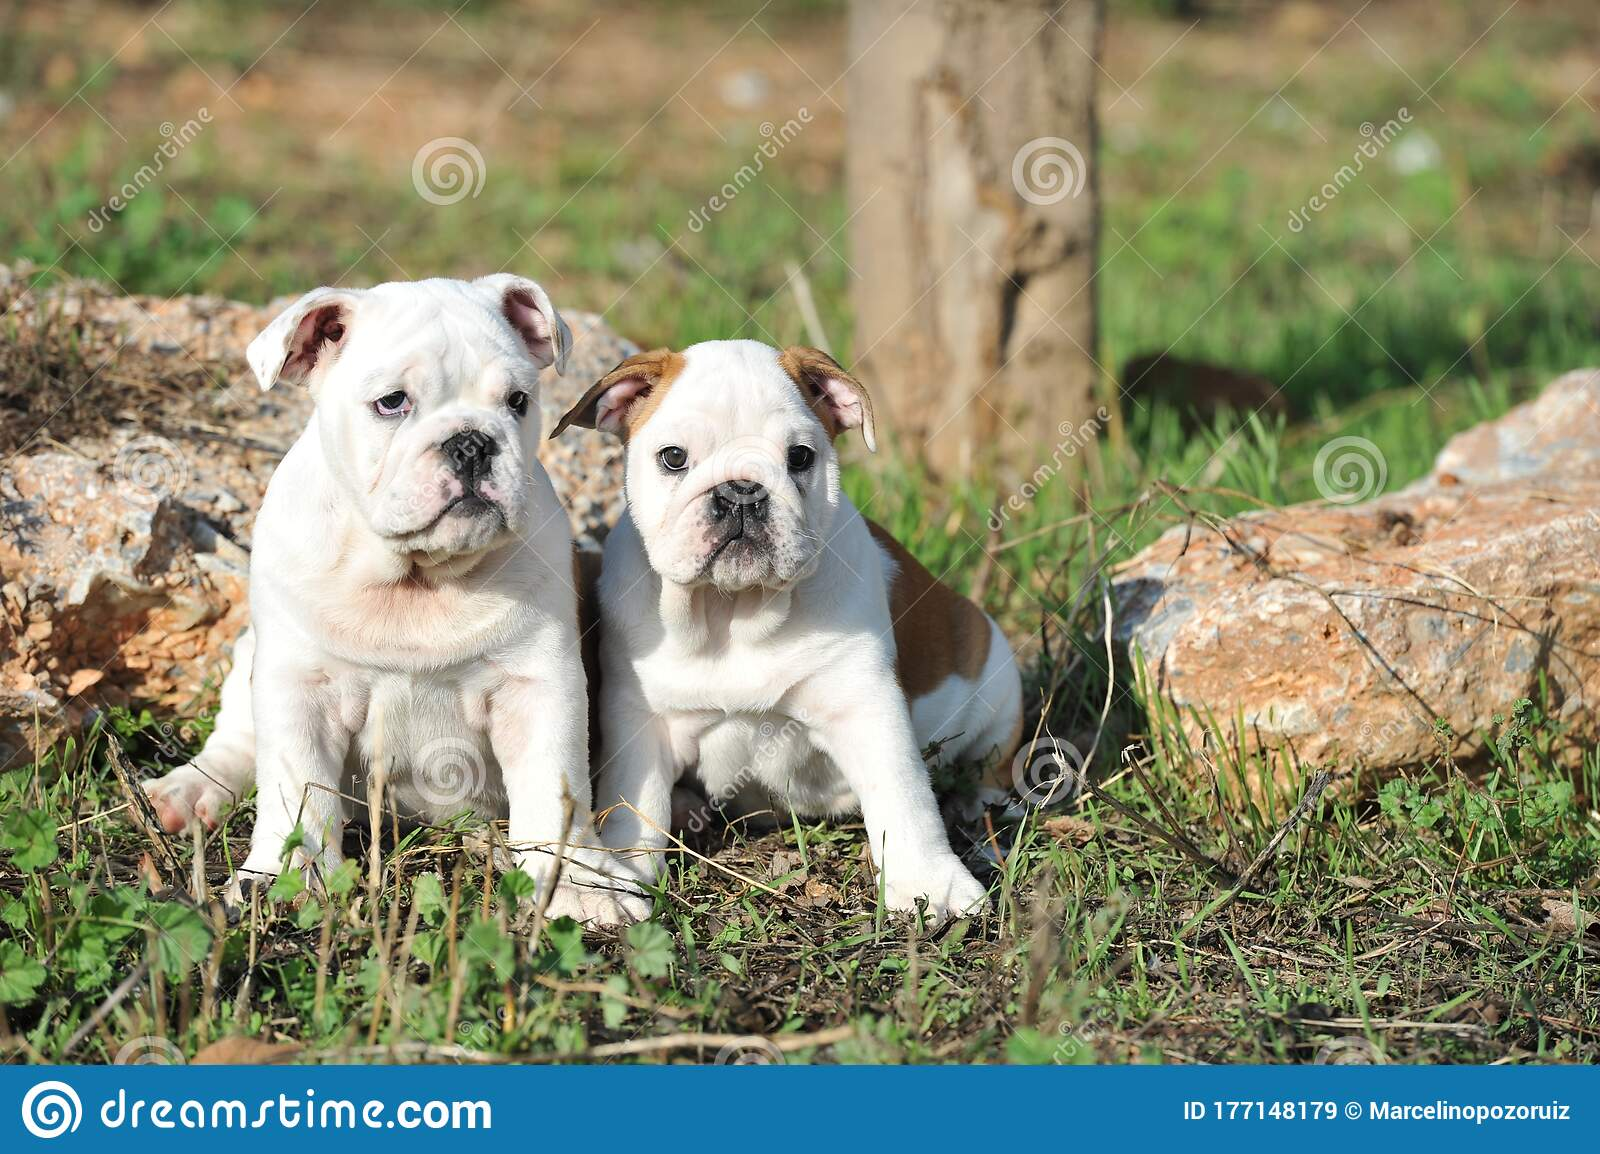 Cute Couple Of English Bulldog Puppies On The Grass In The Park Stock Image Image Of Breed Animal 177148179